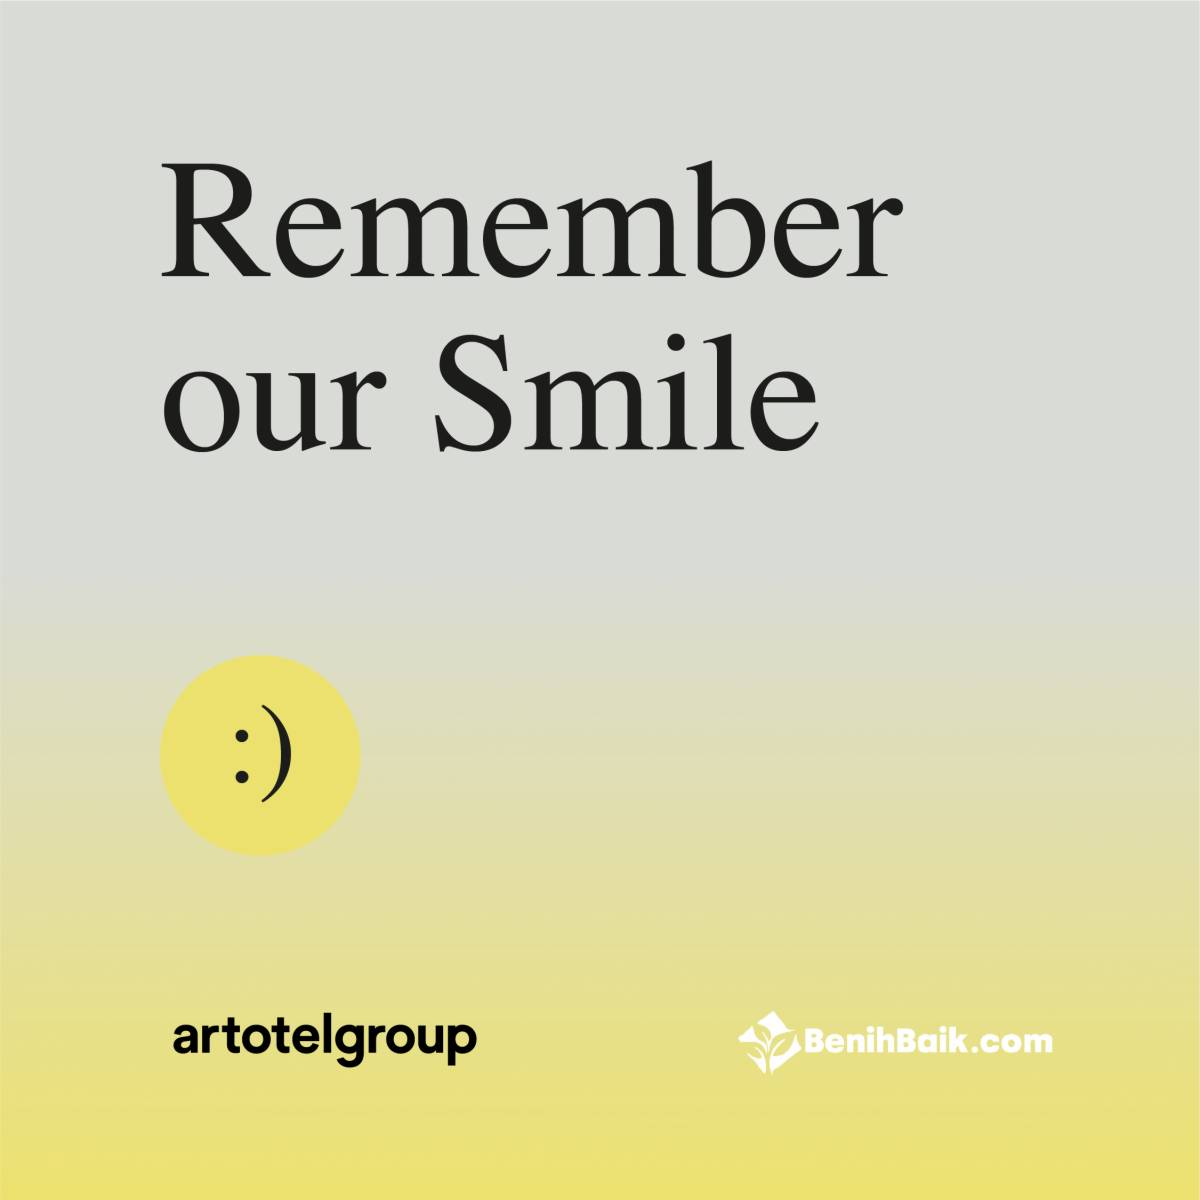 ROUND-UP ''SMILES'' FROM ARTOTEL GROUP FOR ITS EMPLOYEES